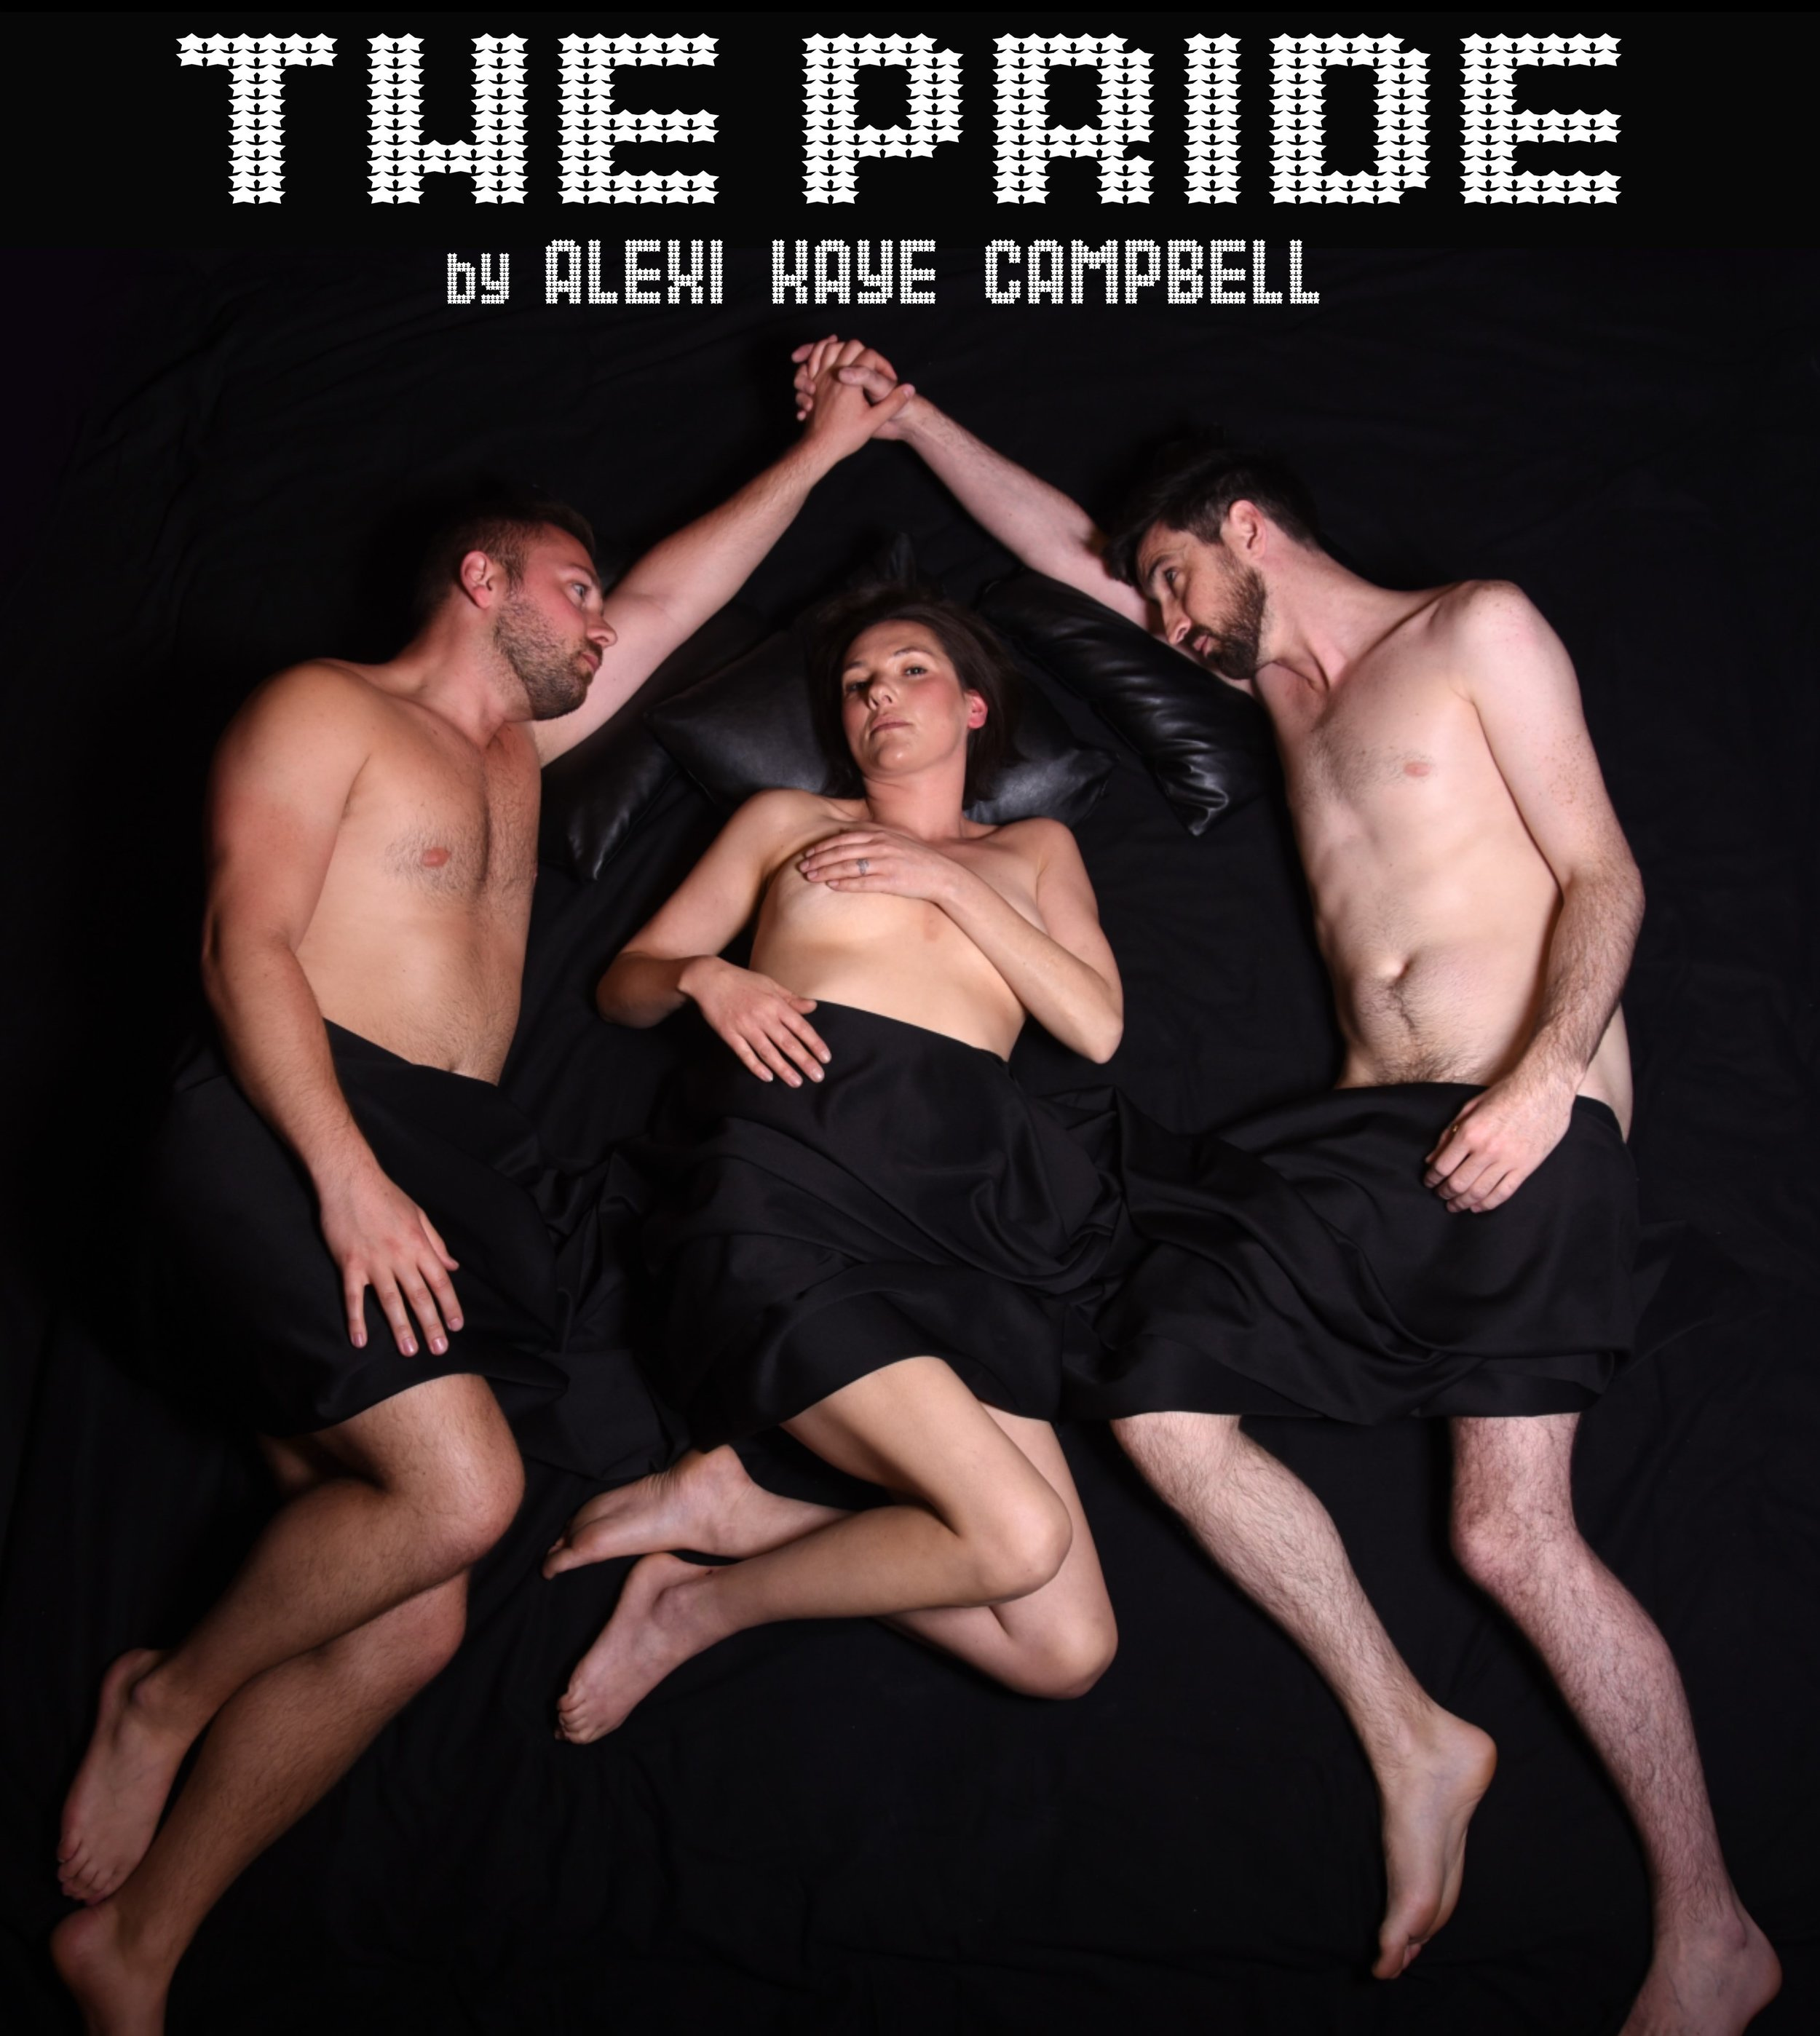 the pride web image 3.jpg